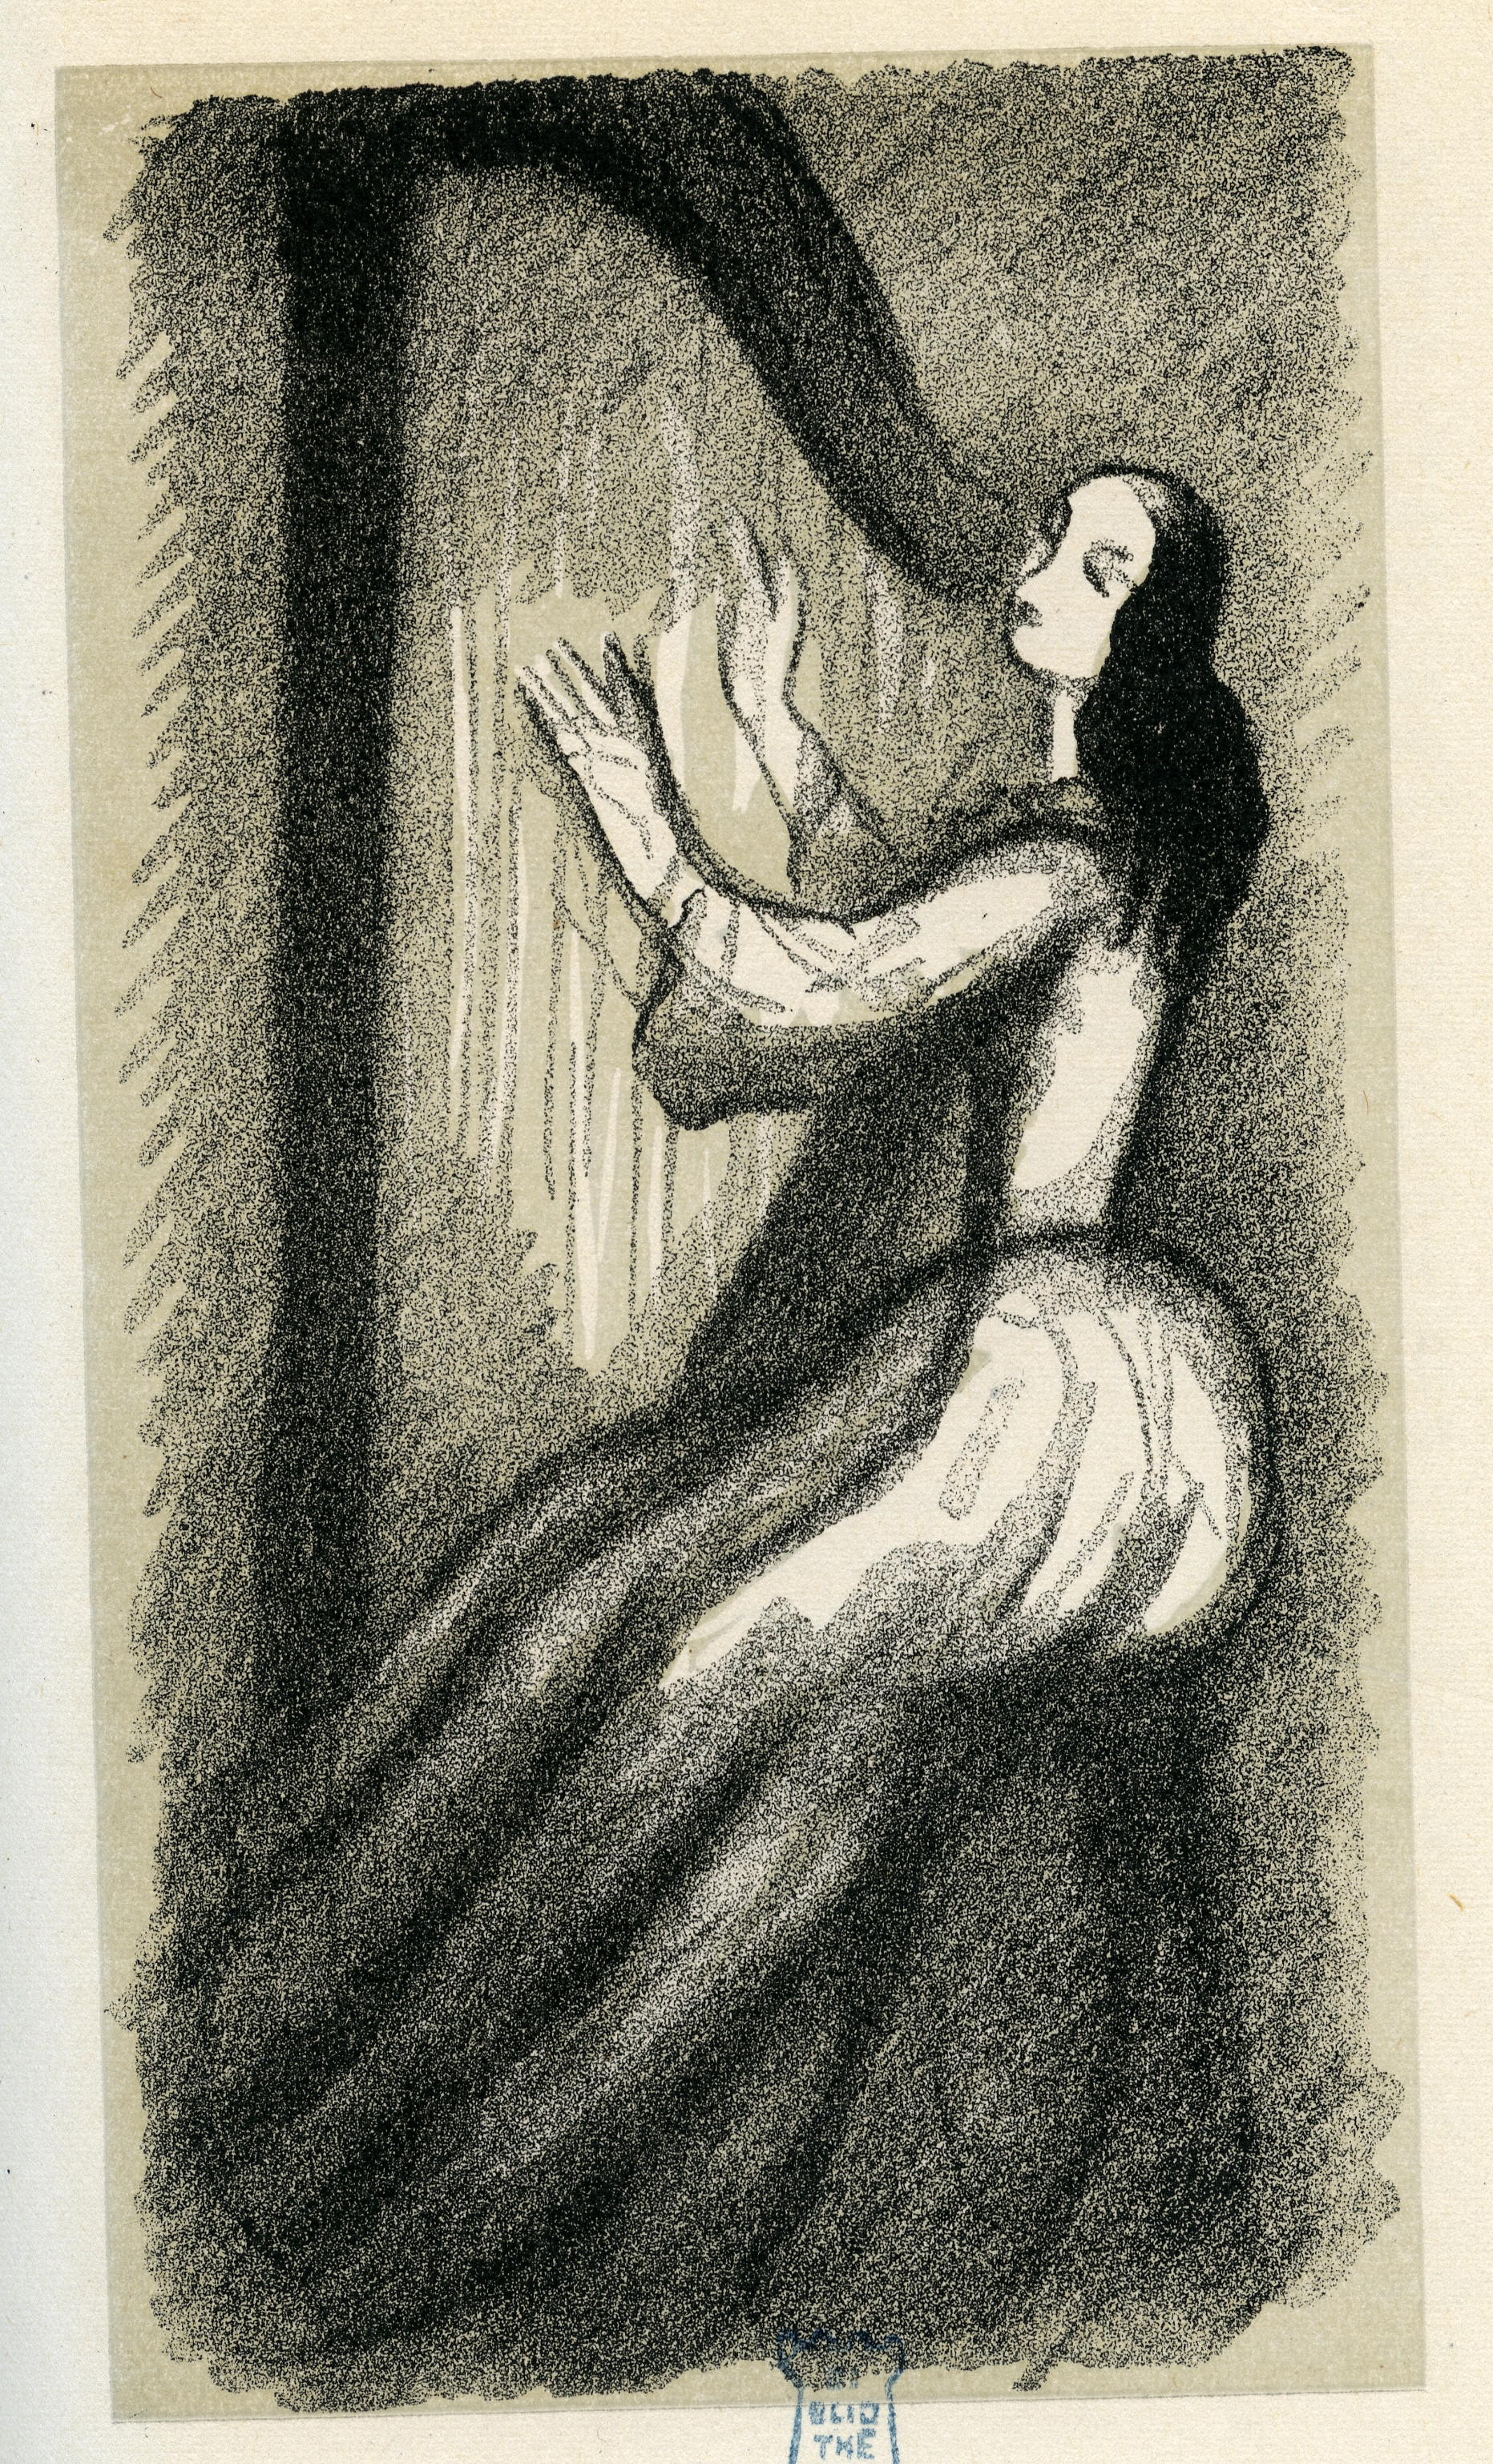 Jane la Pale (Wann-Chlore), 1947, illustration de Picart le Doux